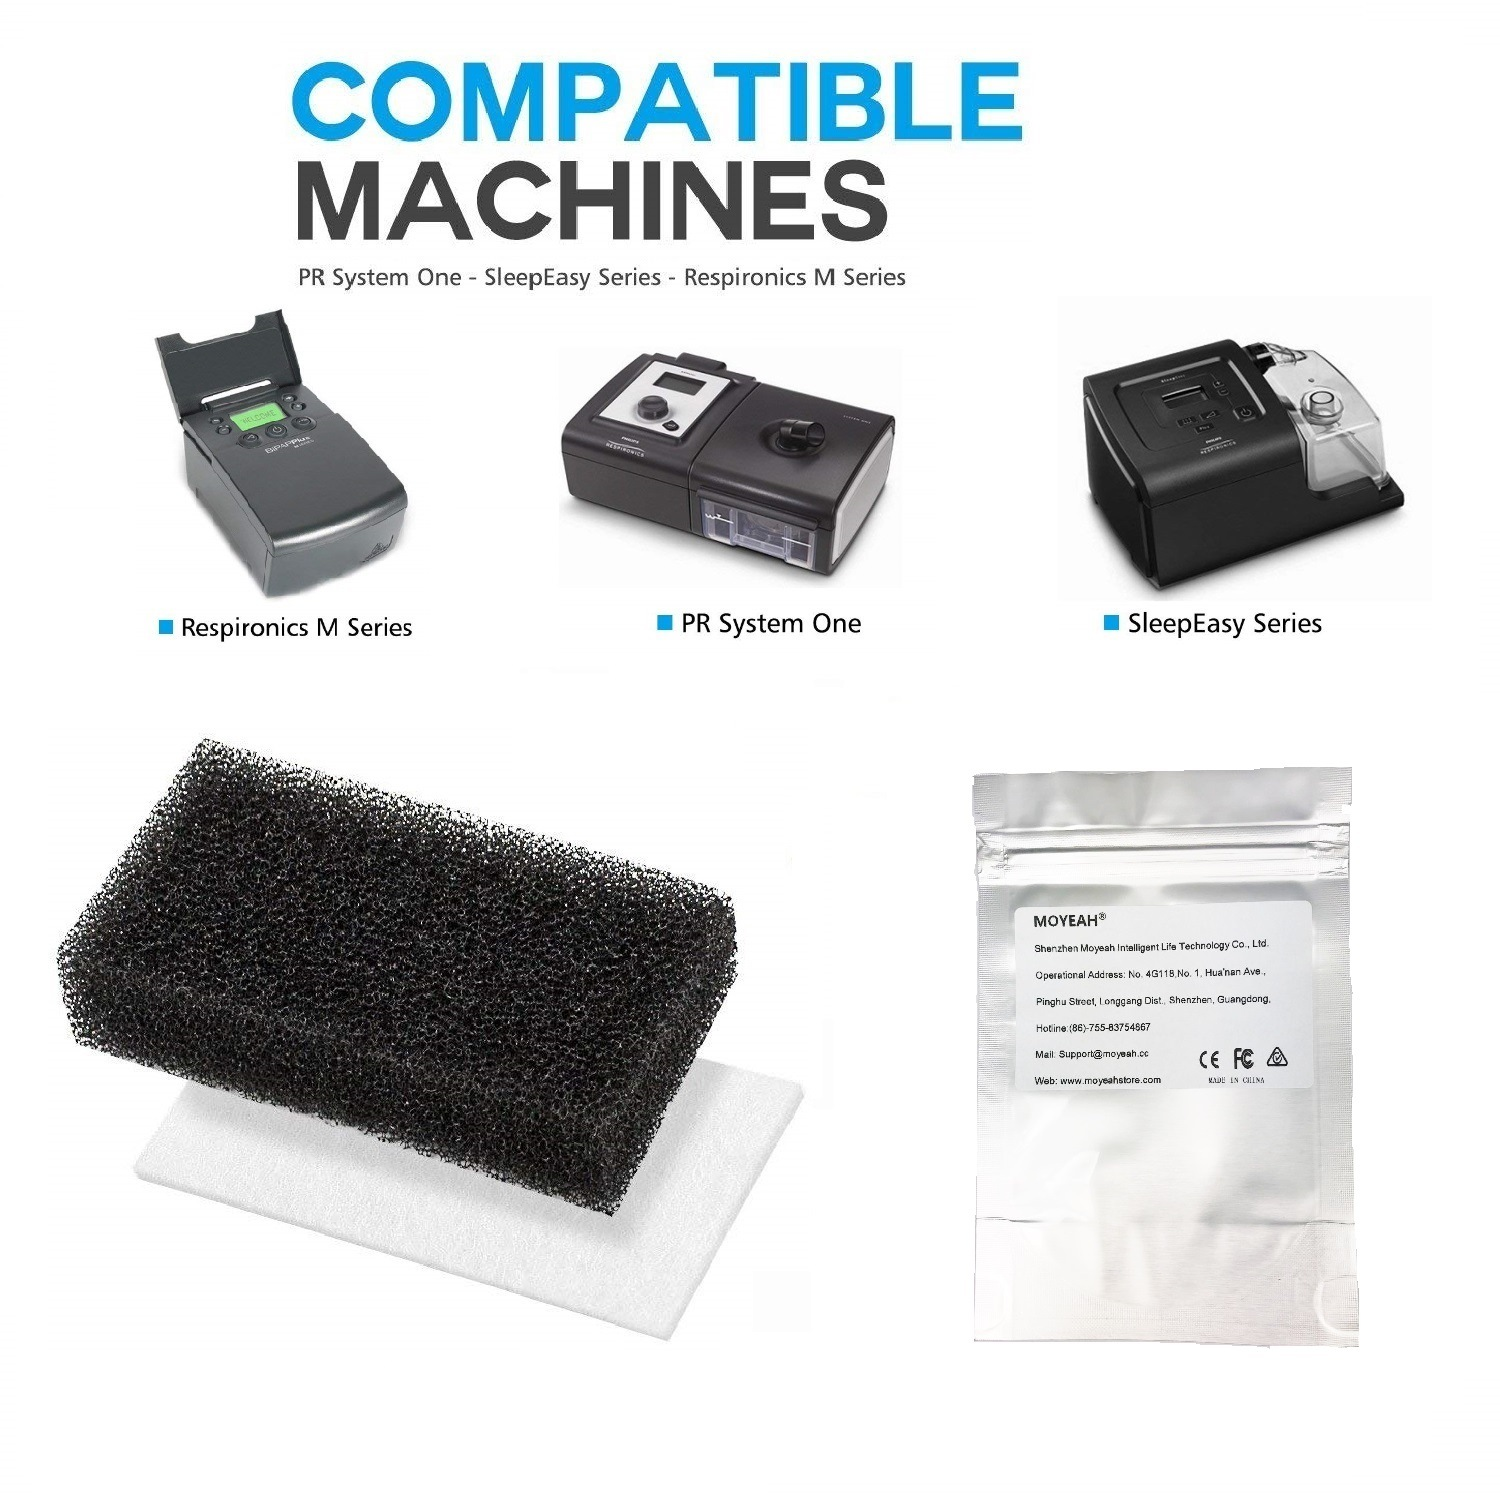 Wholesale Ultra Fine CPAP Foam Filters for Philips Respironics M Series / PR System One / Sleepeasy Series (12pcs, Black + White)